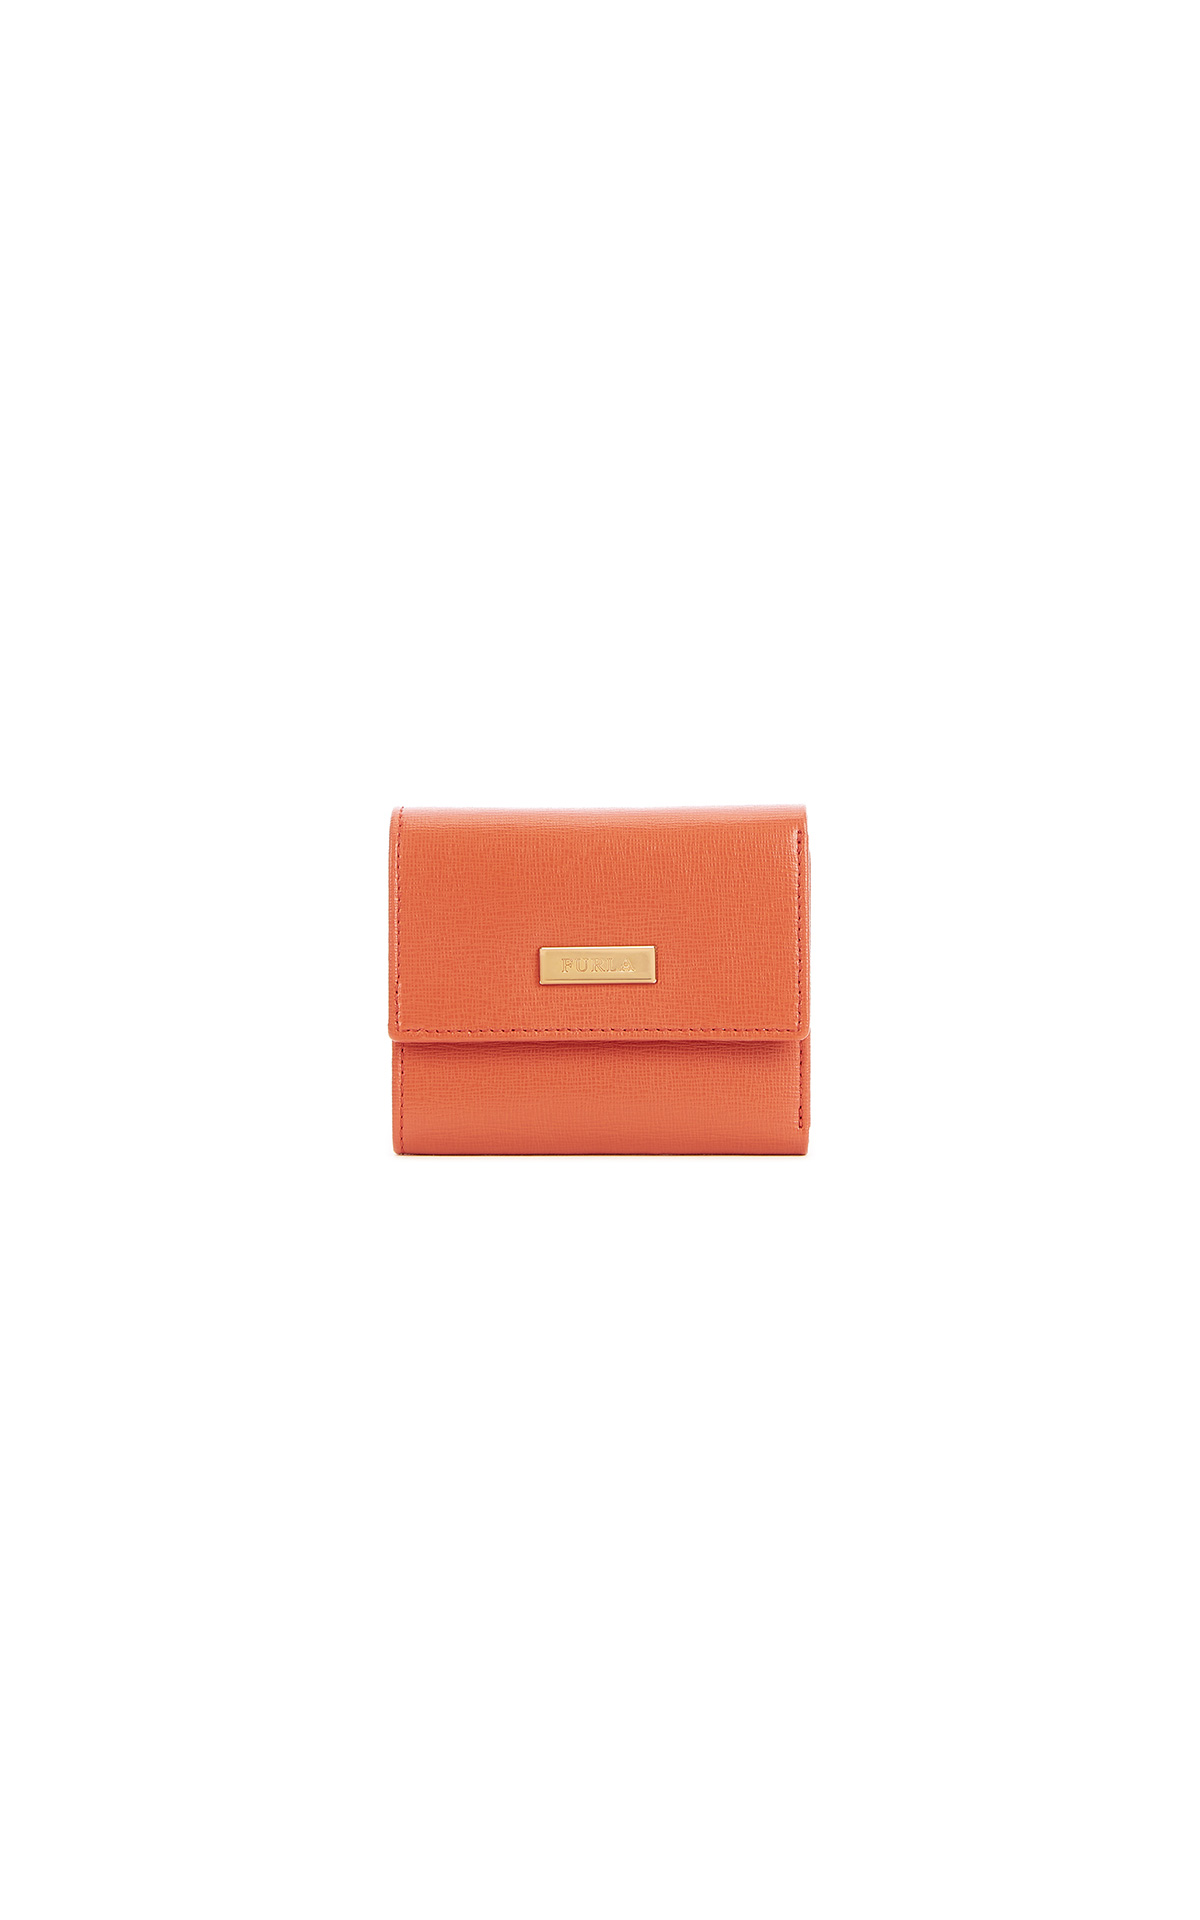 Orange leather wallet Furla